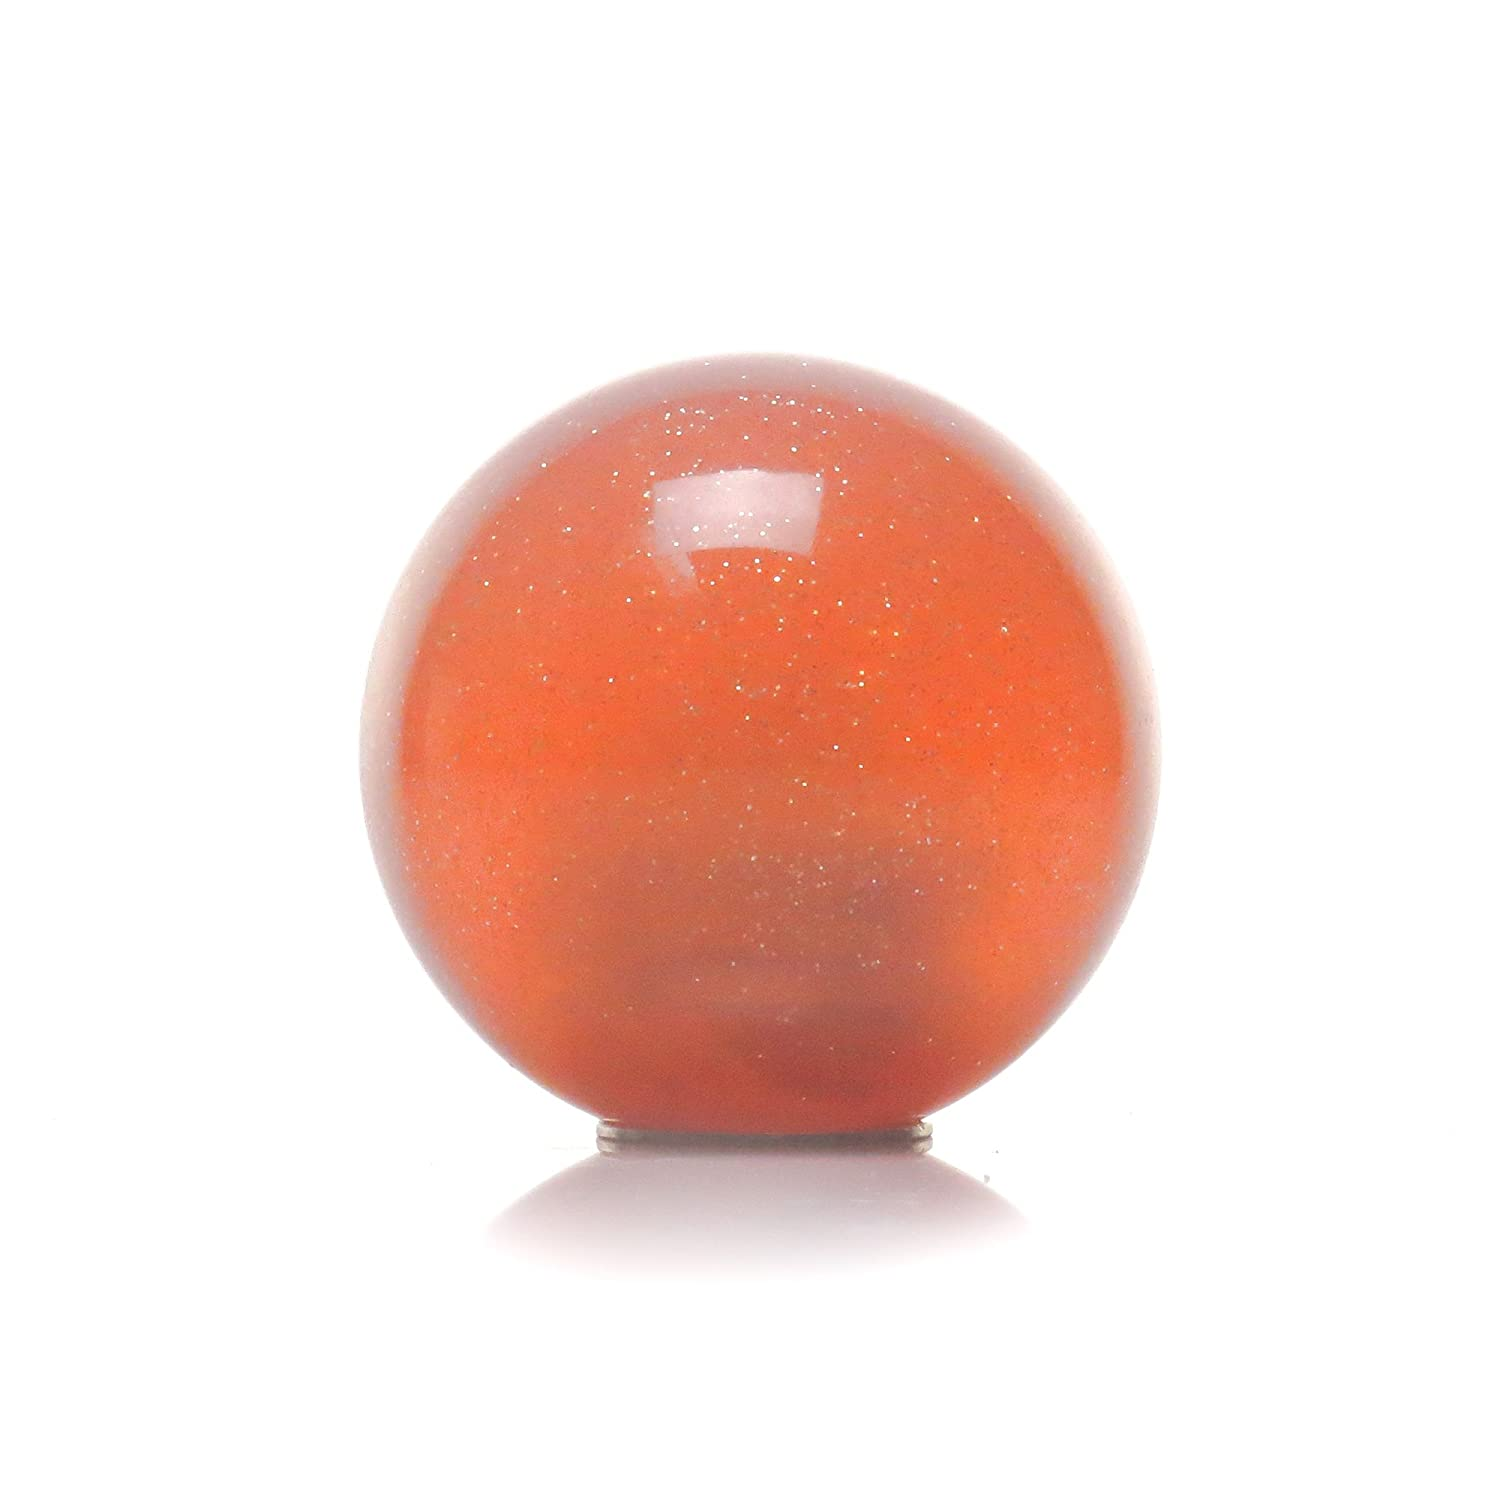 American Shifter 37472 Orange Metal Flake Shift Knob with 16mm x 1.5mm Insert White Prince Crown